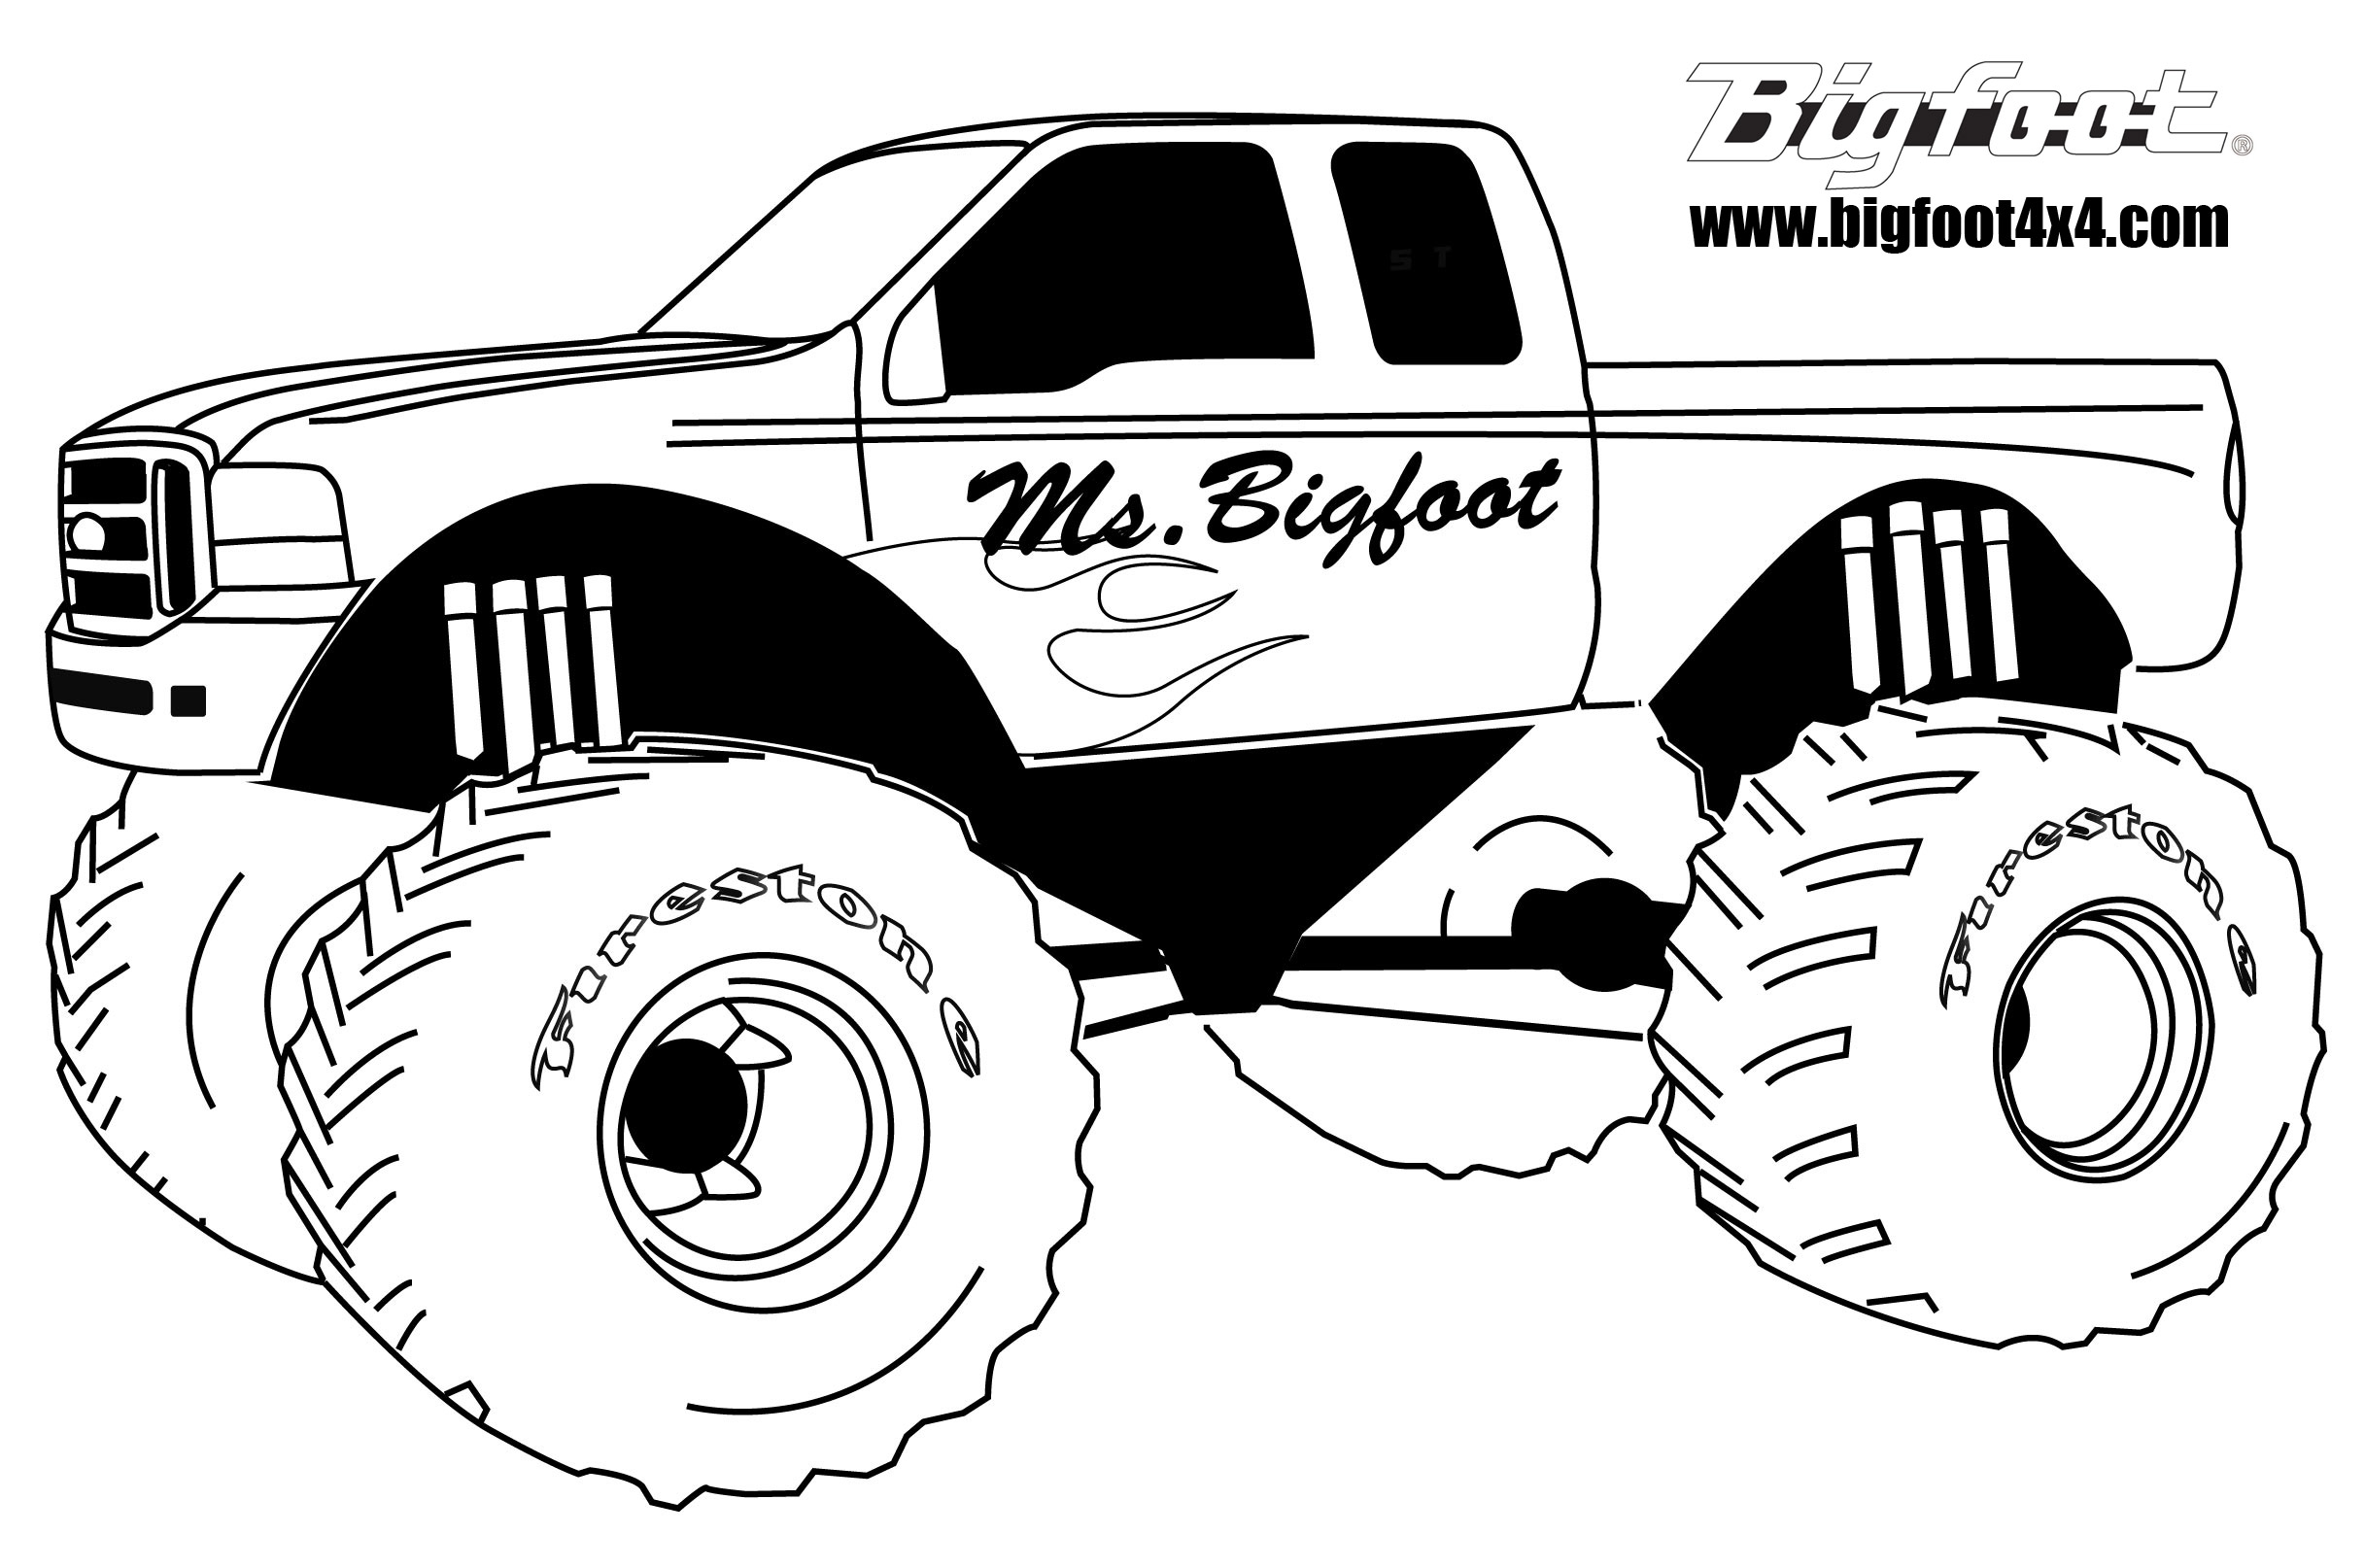 truck colouring in truck coloring pages coloringpages1001com colouring truck in